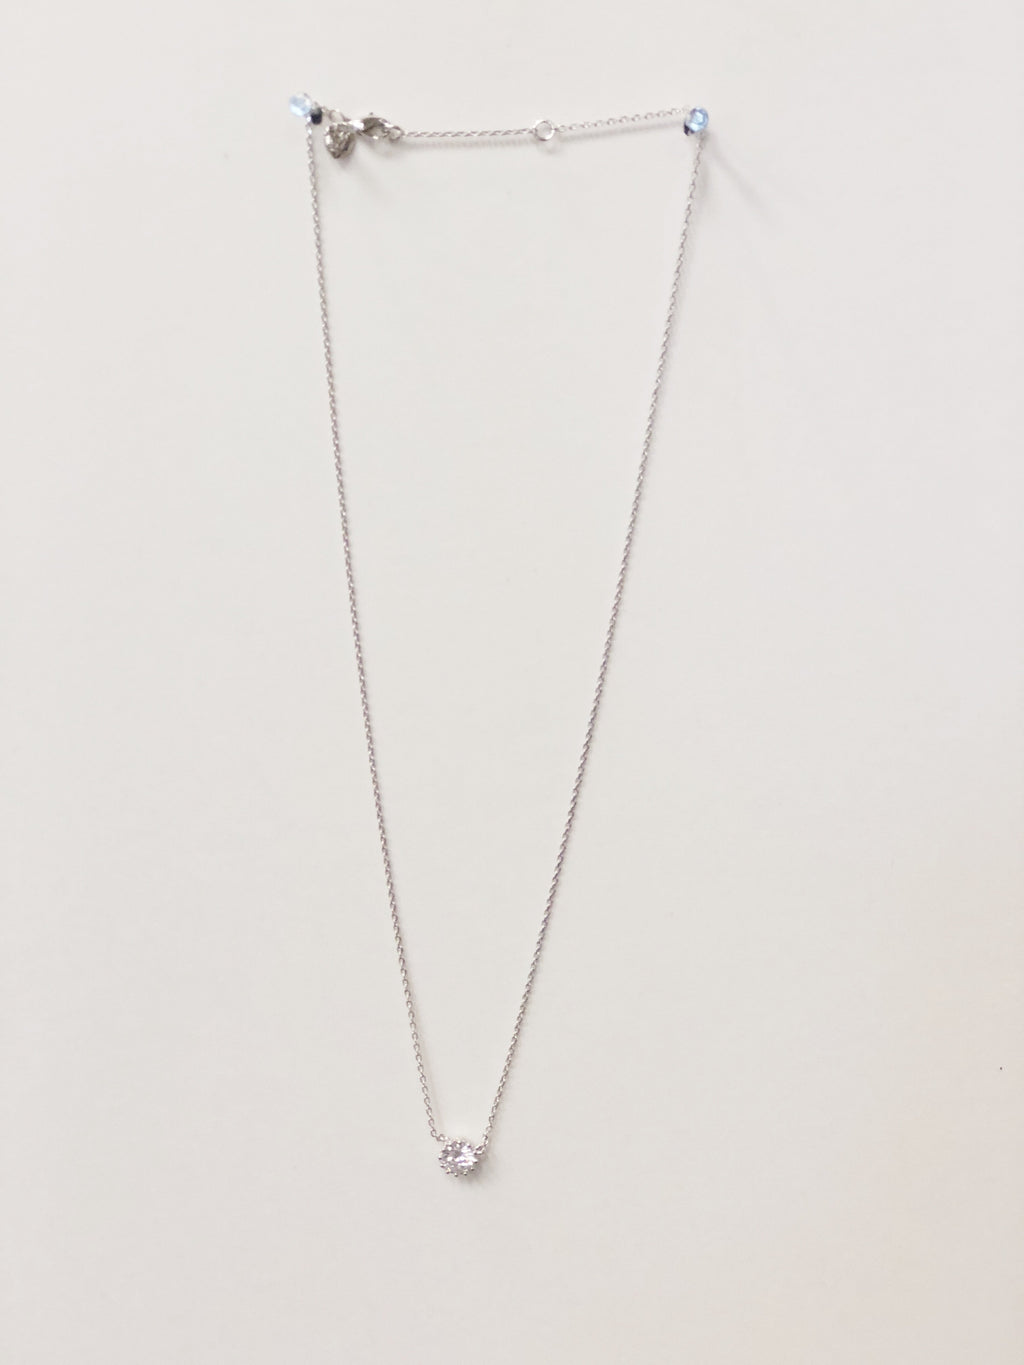 Poised & Polished Necklace - Silver